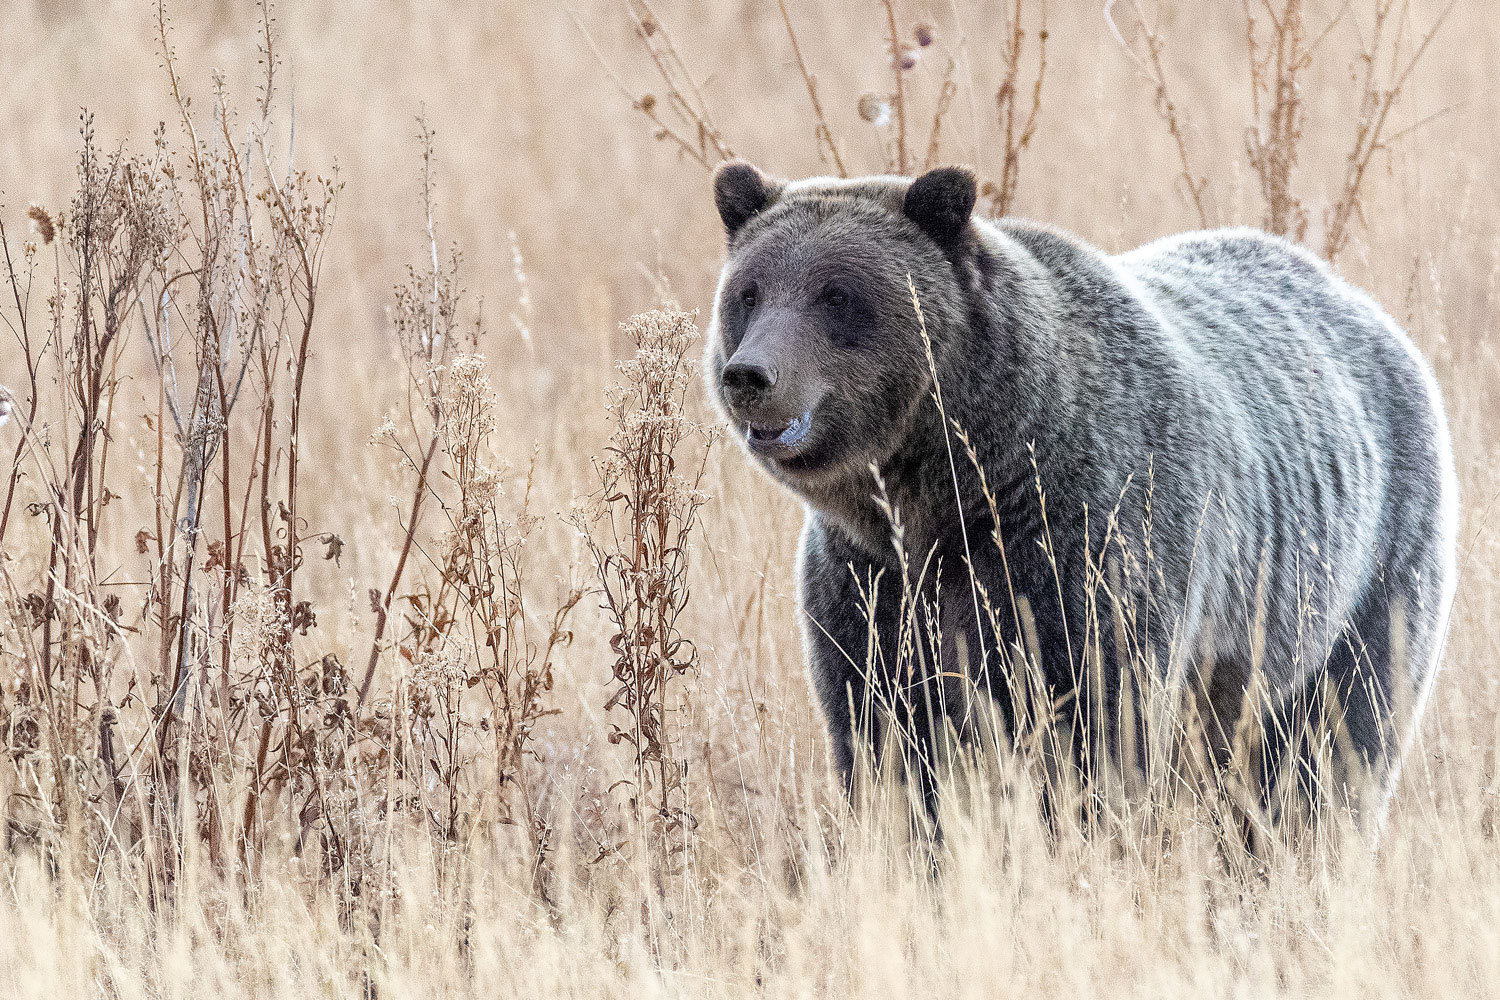 Grizzly bear 610 listens intently for a rodent moving below a field of dried grasses.